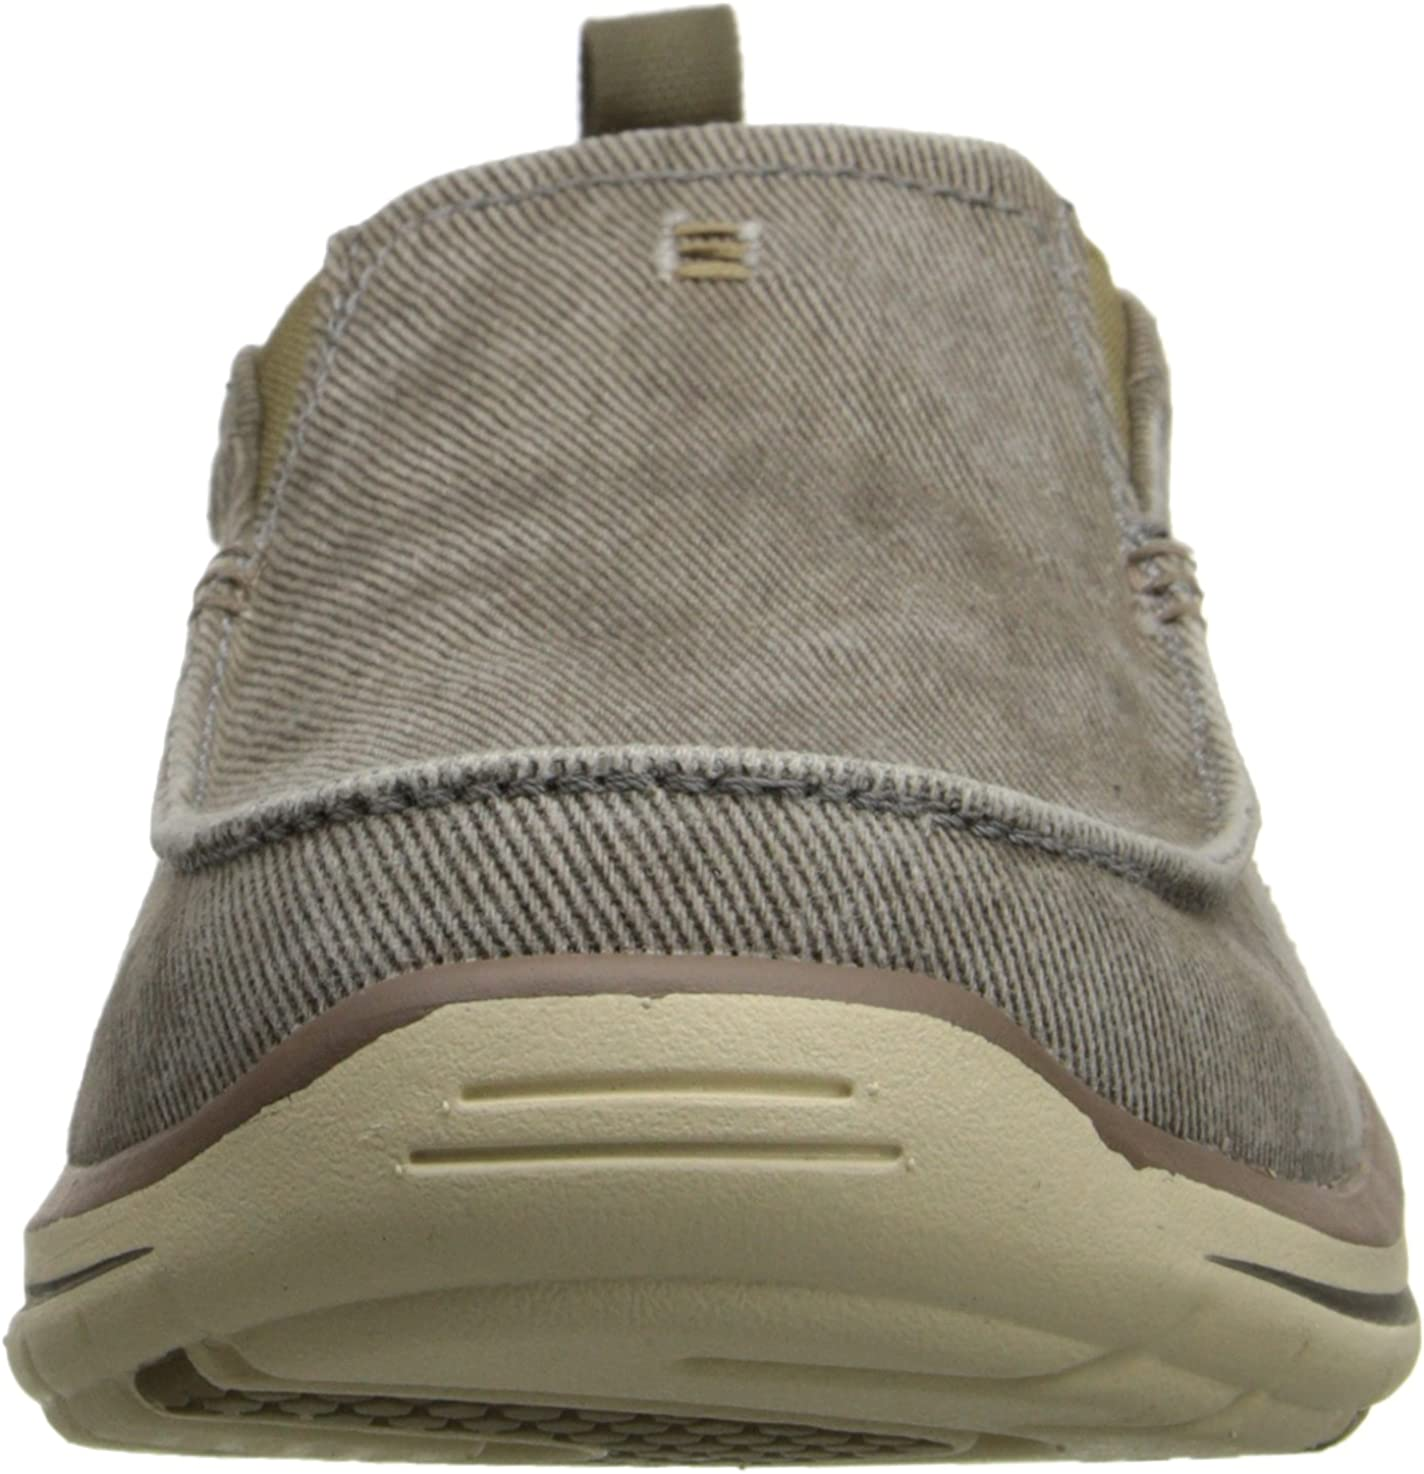 Skechers Men's Relaxed Fit-Elected-Drigo Slip-On Loafer Taupe